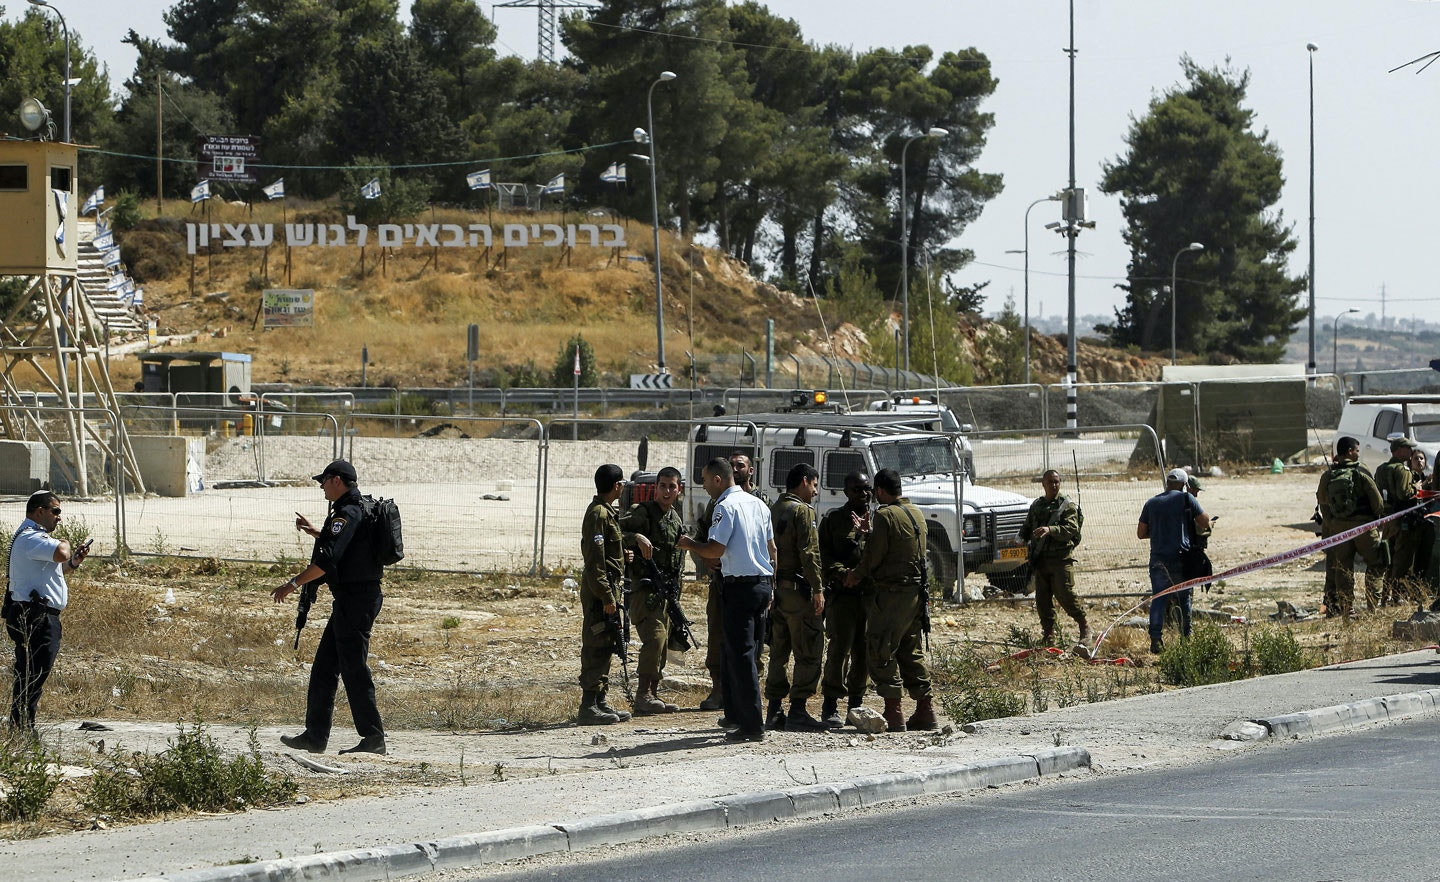 Israeli forensic policemen inspect the place where a 24-year-old Palestinian attempted to stab Israeli soldiers and was shot dead by security forces, at the Gush Etzion junction, a settlement bloc next to the biblical Palestinian town of Bethlehem on July 28, 2017.Israeli-Palestinian tensions have been high over the last couple weeks due to a dispute over the sensitive Al-Aqsa mosque compound in Jerusalem, also known as the Haram al-Sharif or to Jews as the Temple Mount, but it was unclear if there was any link. / AFP PHOTO / Musa AL SHAER (Photo credit should read MUSA AL SHAER/AFP/Getty Images)